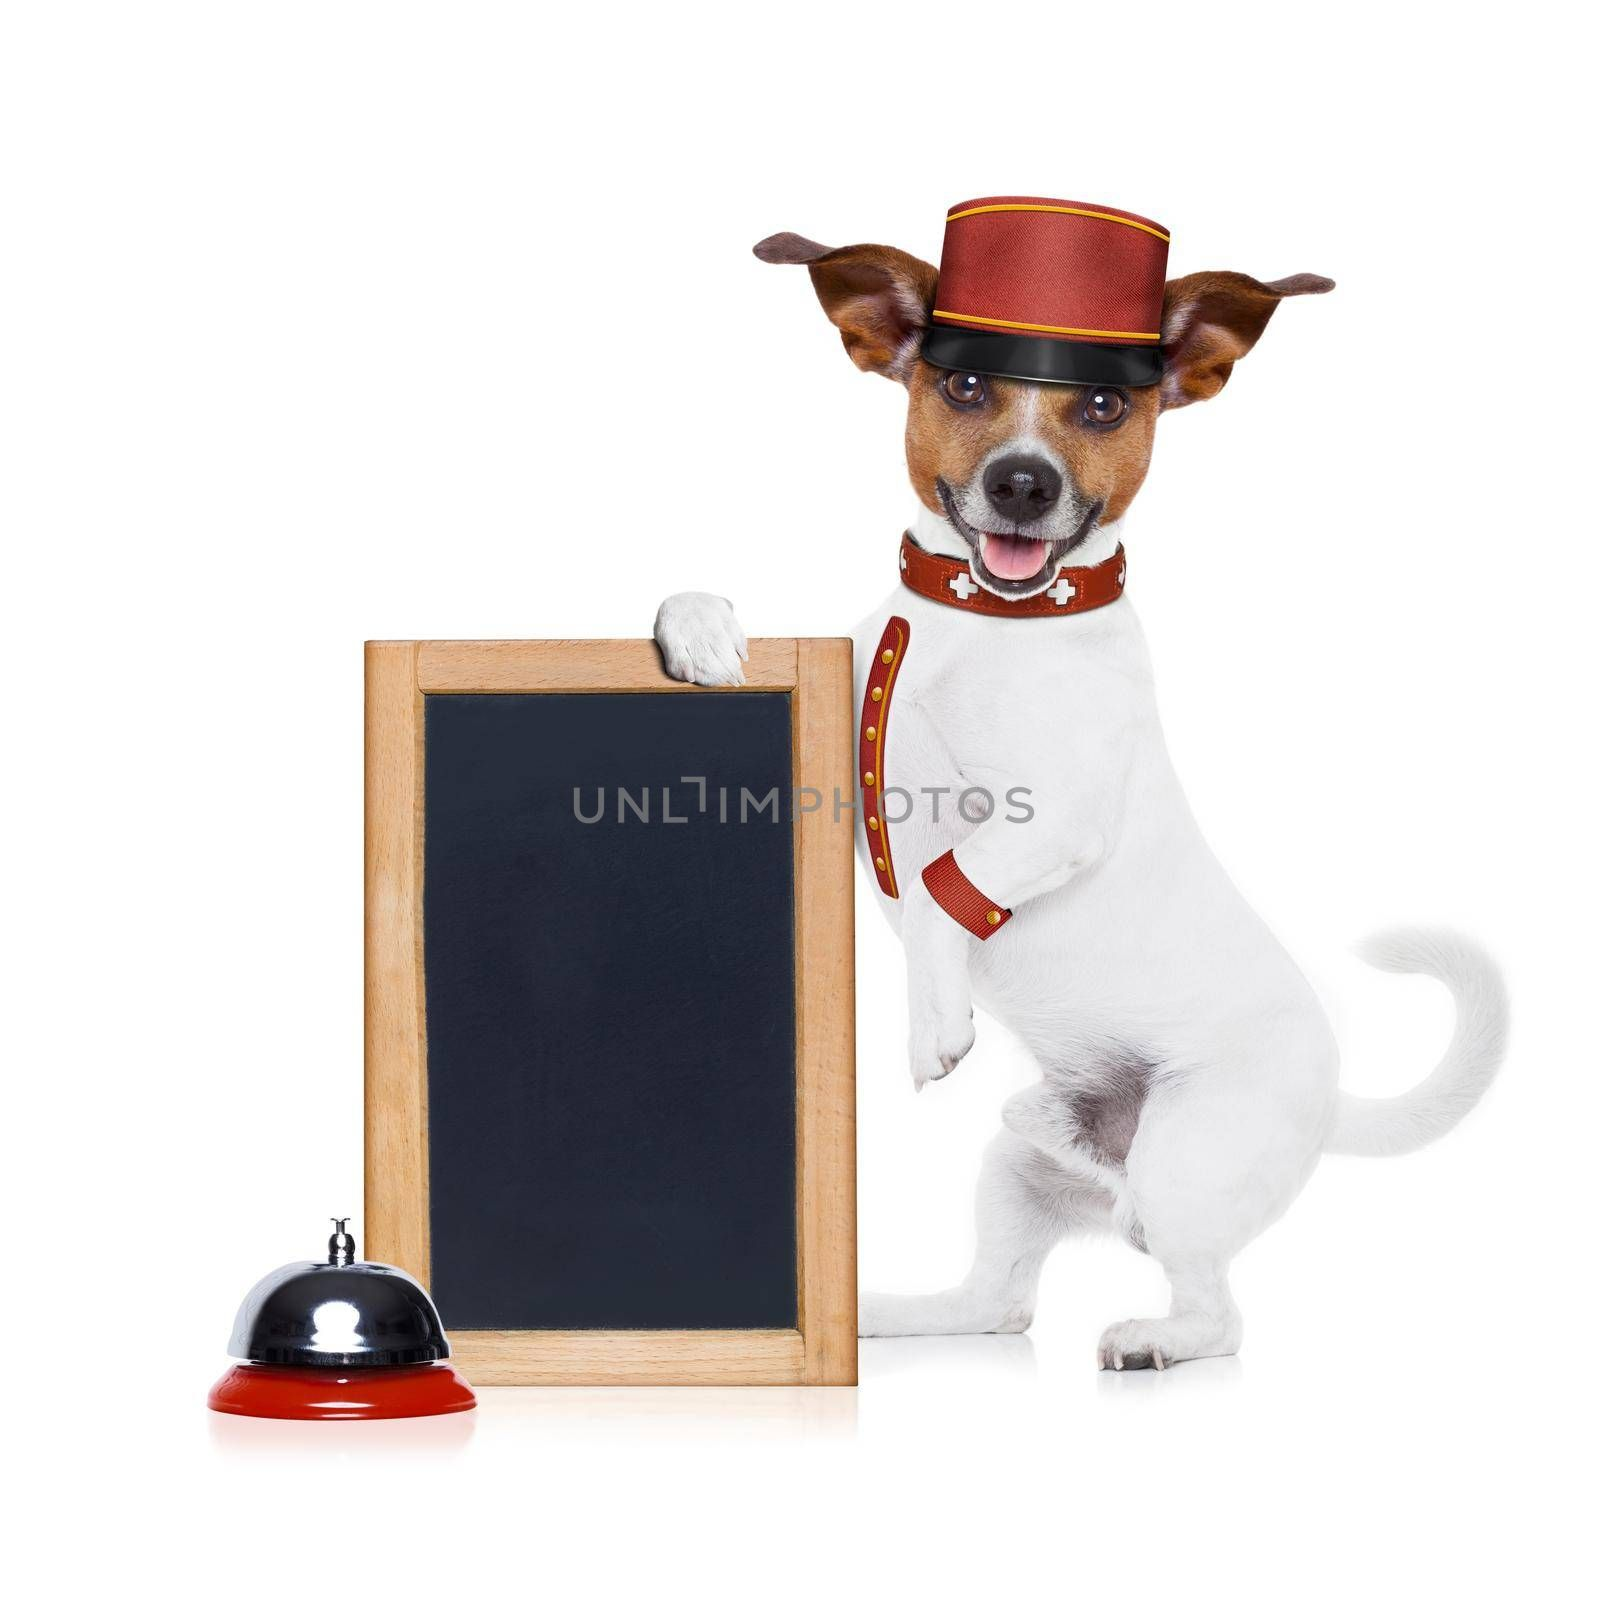 jack russell bellboy dog holding a blank and empty blackboard at hotel, where pets are welcome and allowed,isolated on white background